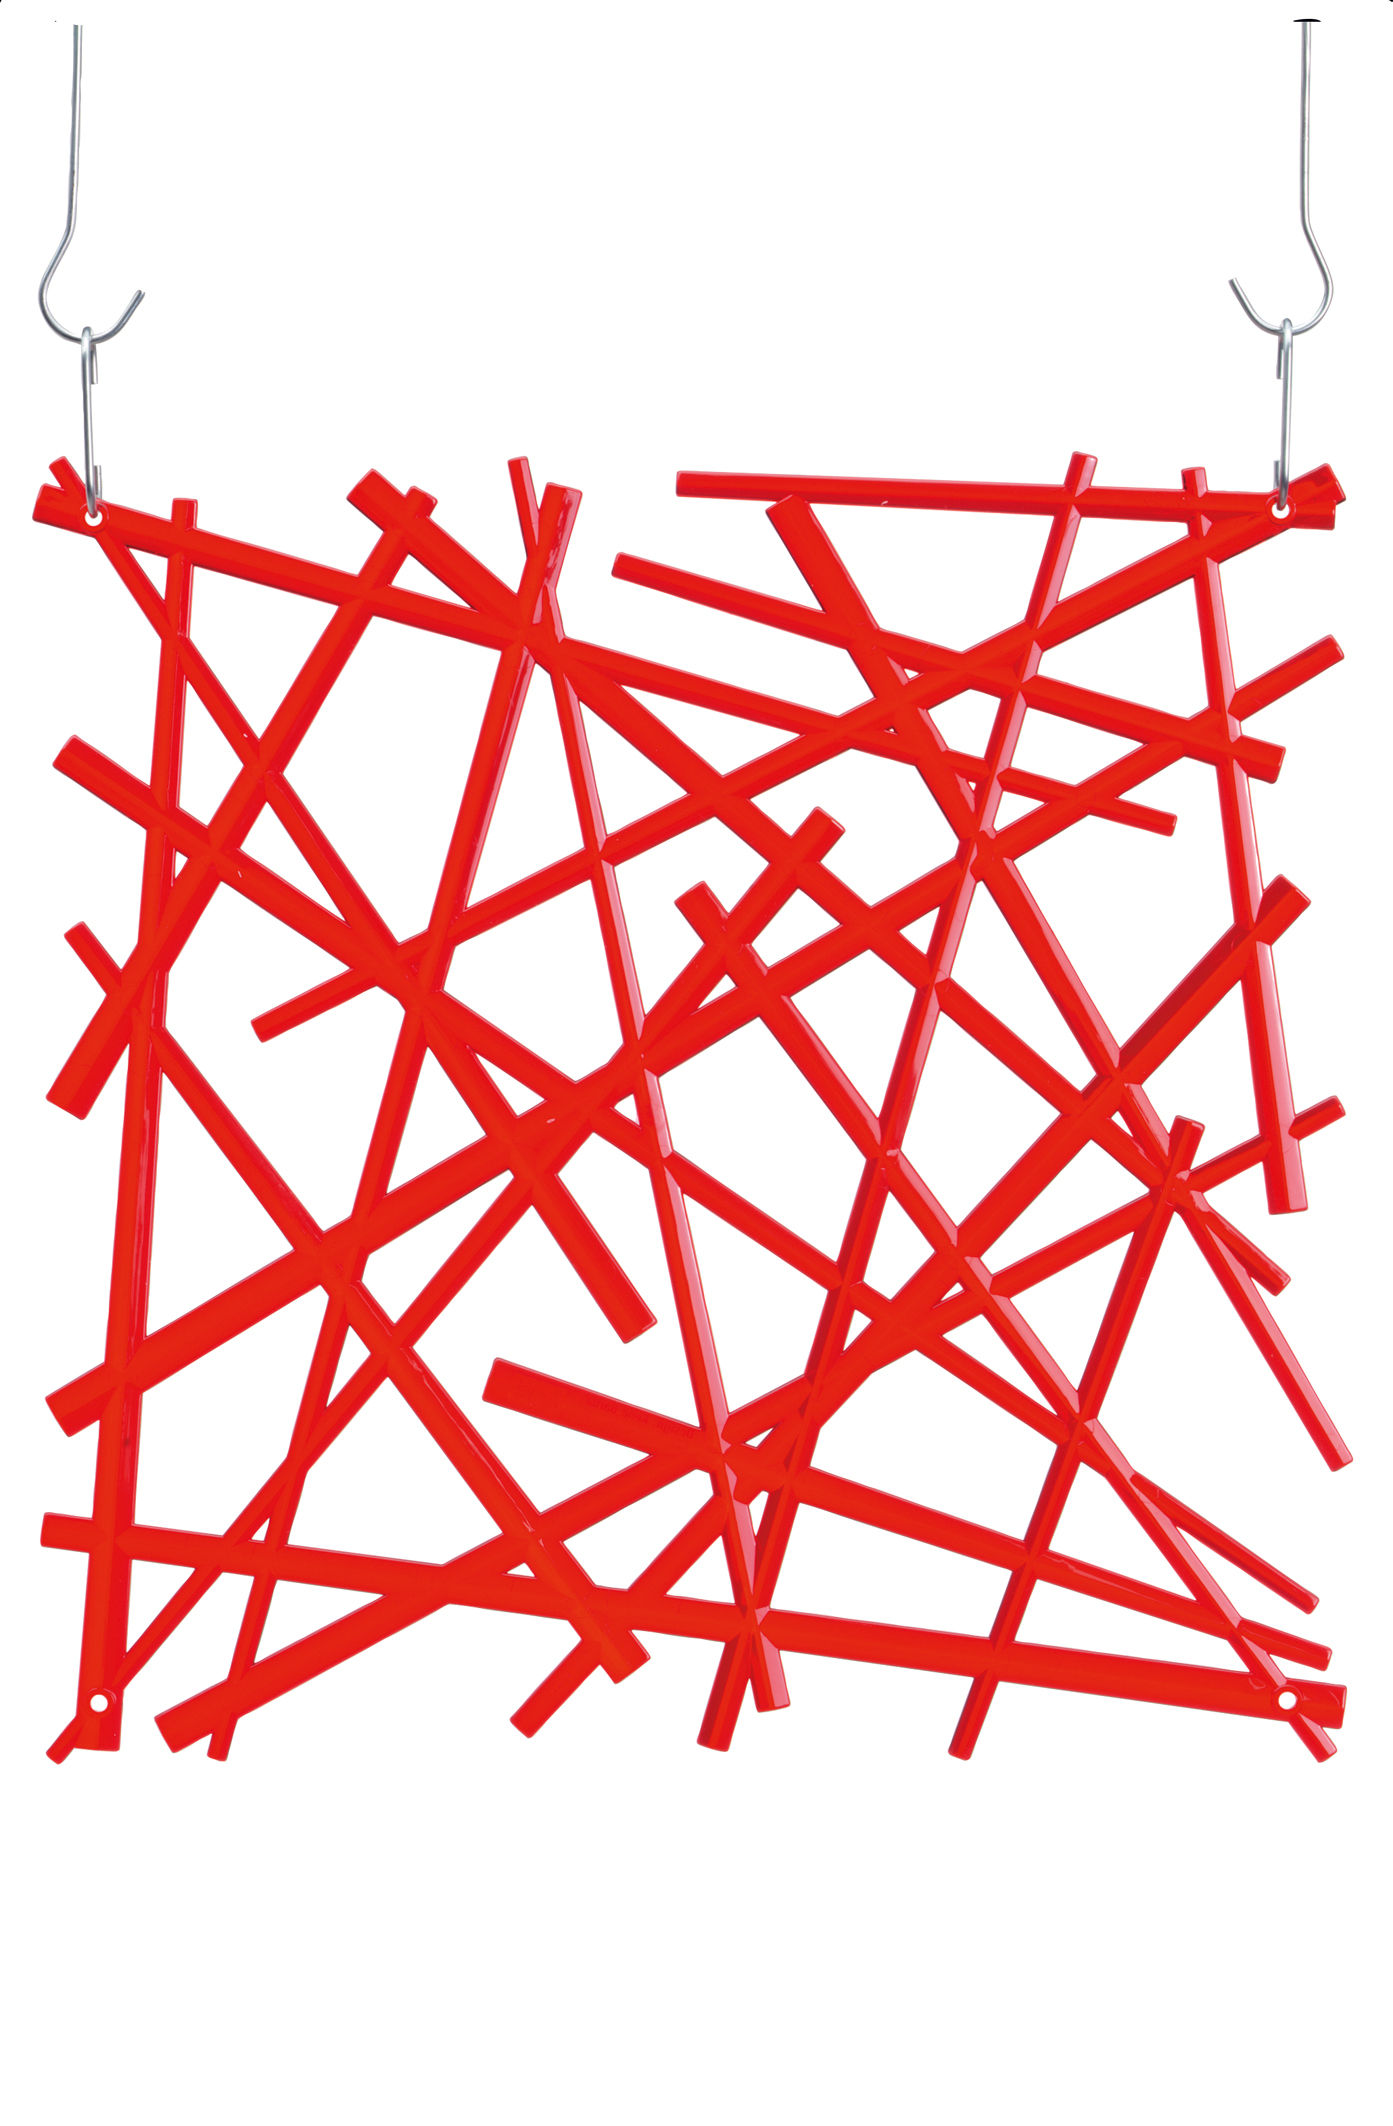 Mobilier - Paravents, séparations - Cloison Stixx / Set de 4 - Crochets inclus - Koziol - Rouge transparent - Polycarbonate